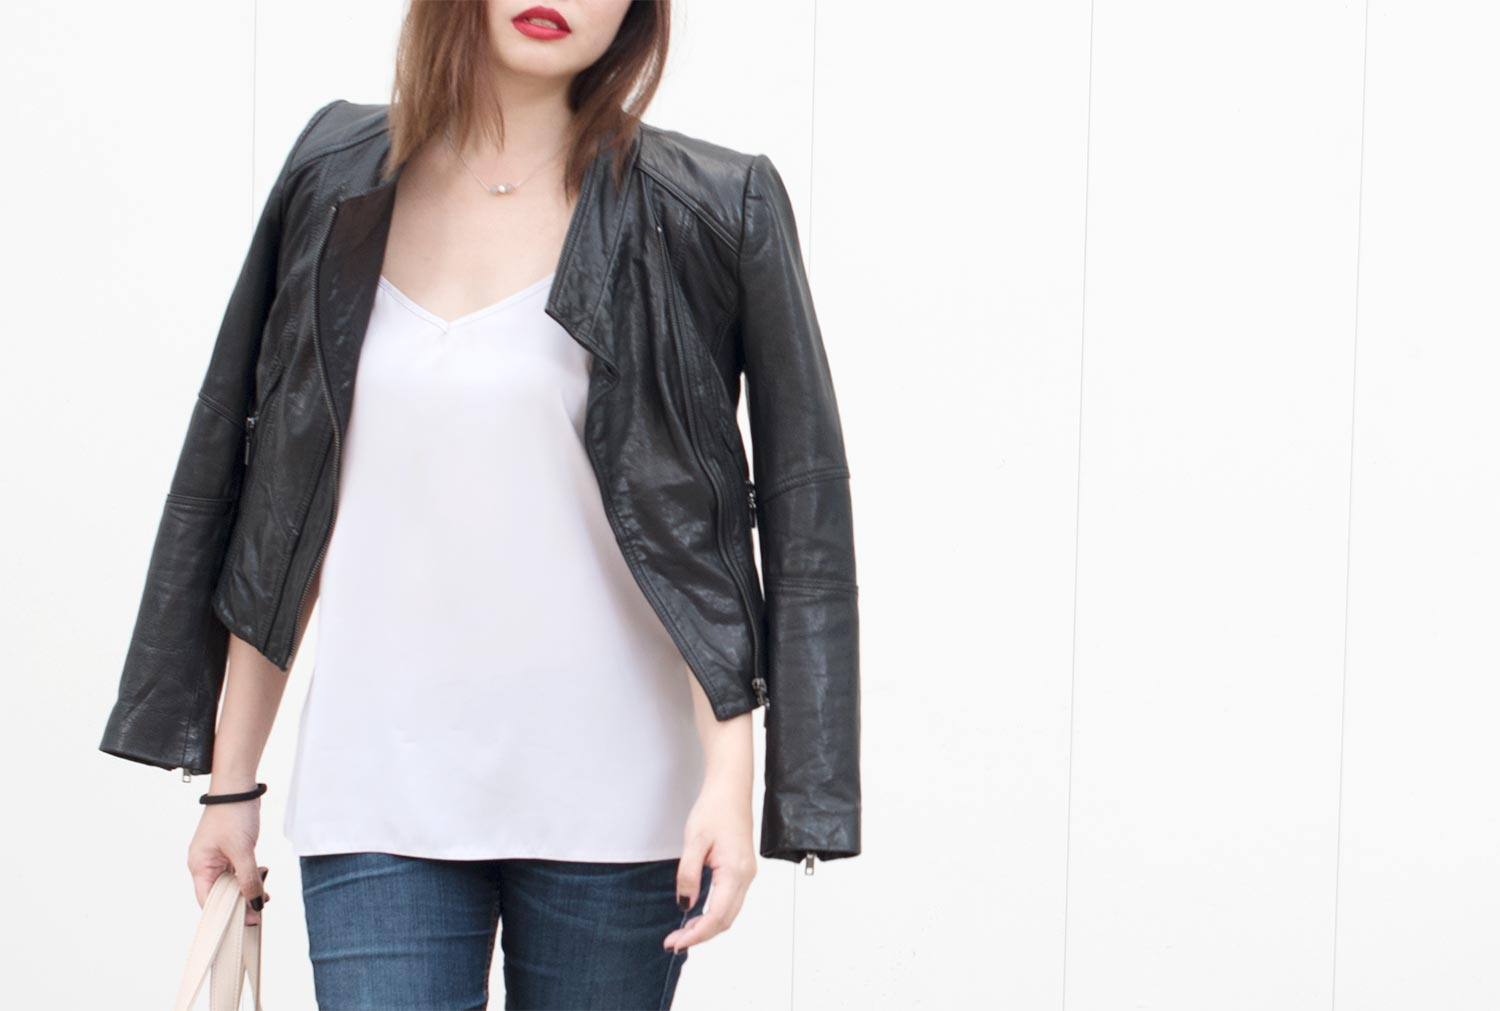 How to Shop for Your First Real Leather Jacket by The Skinny Scout